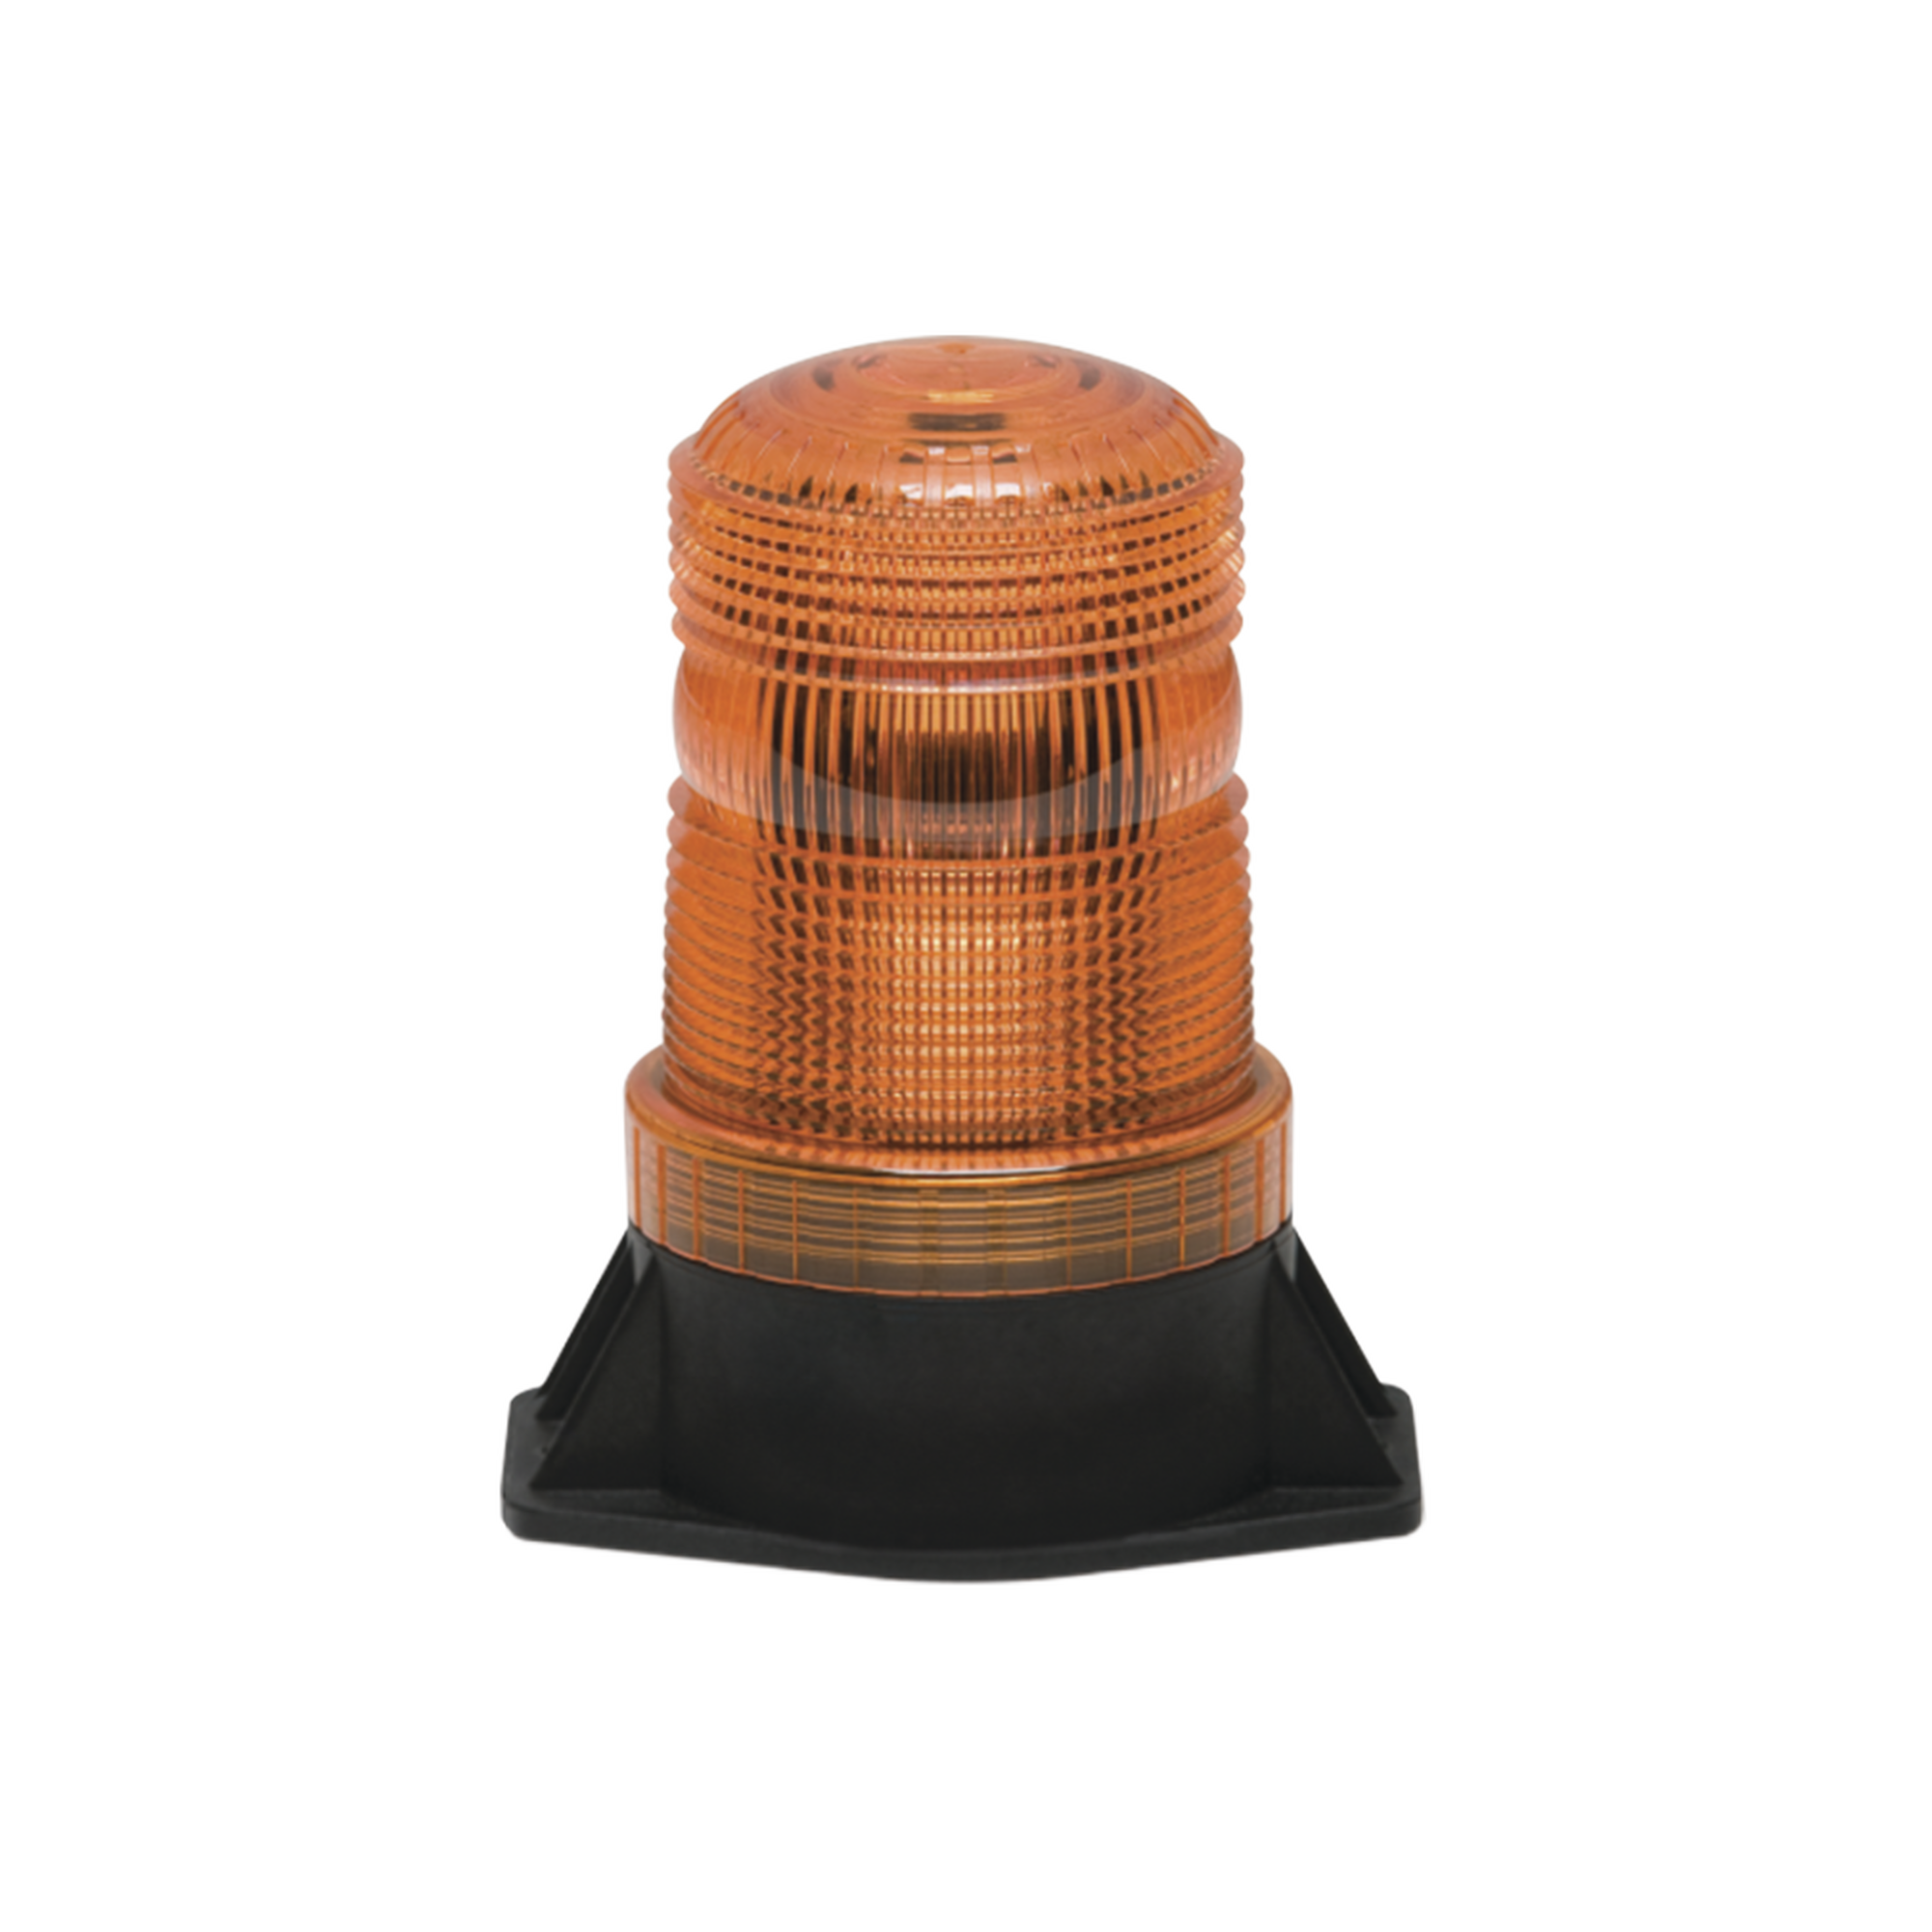 Mini Burbuja de LED Serie X6262, Color ambar